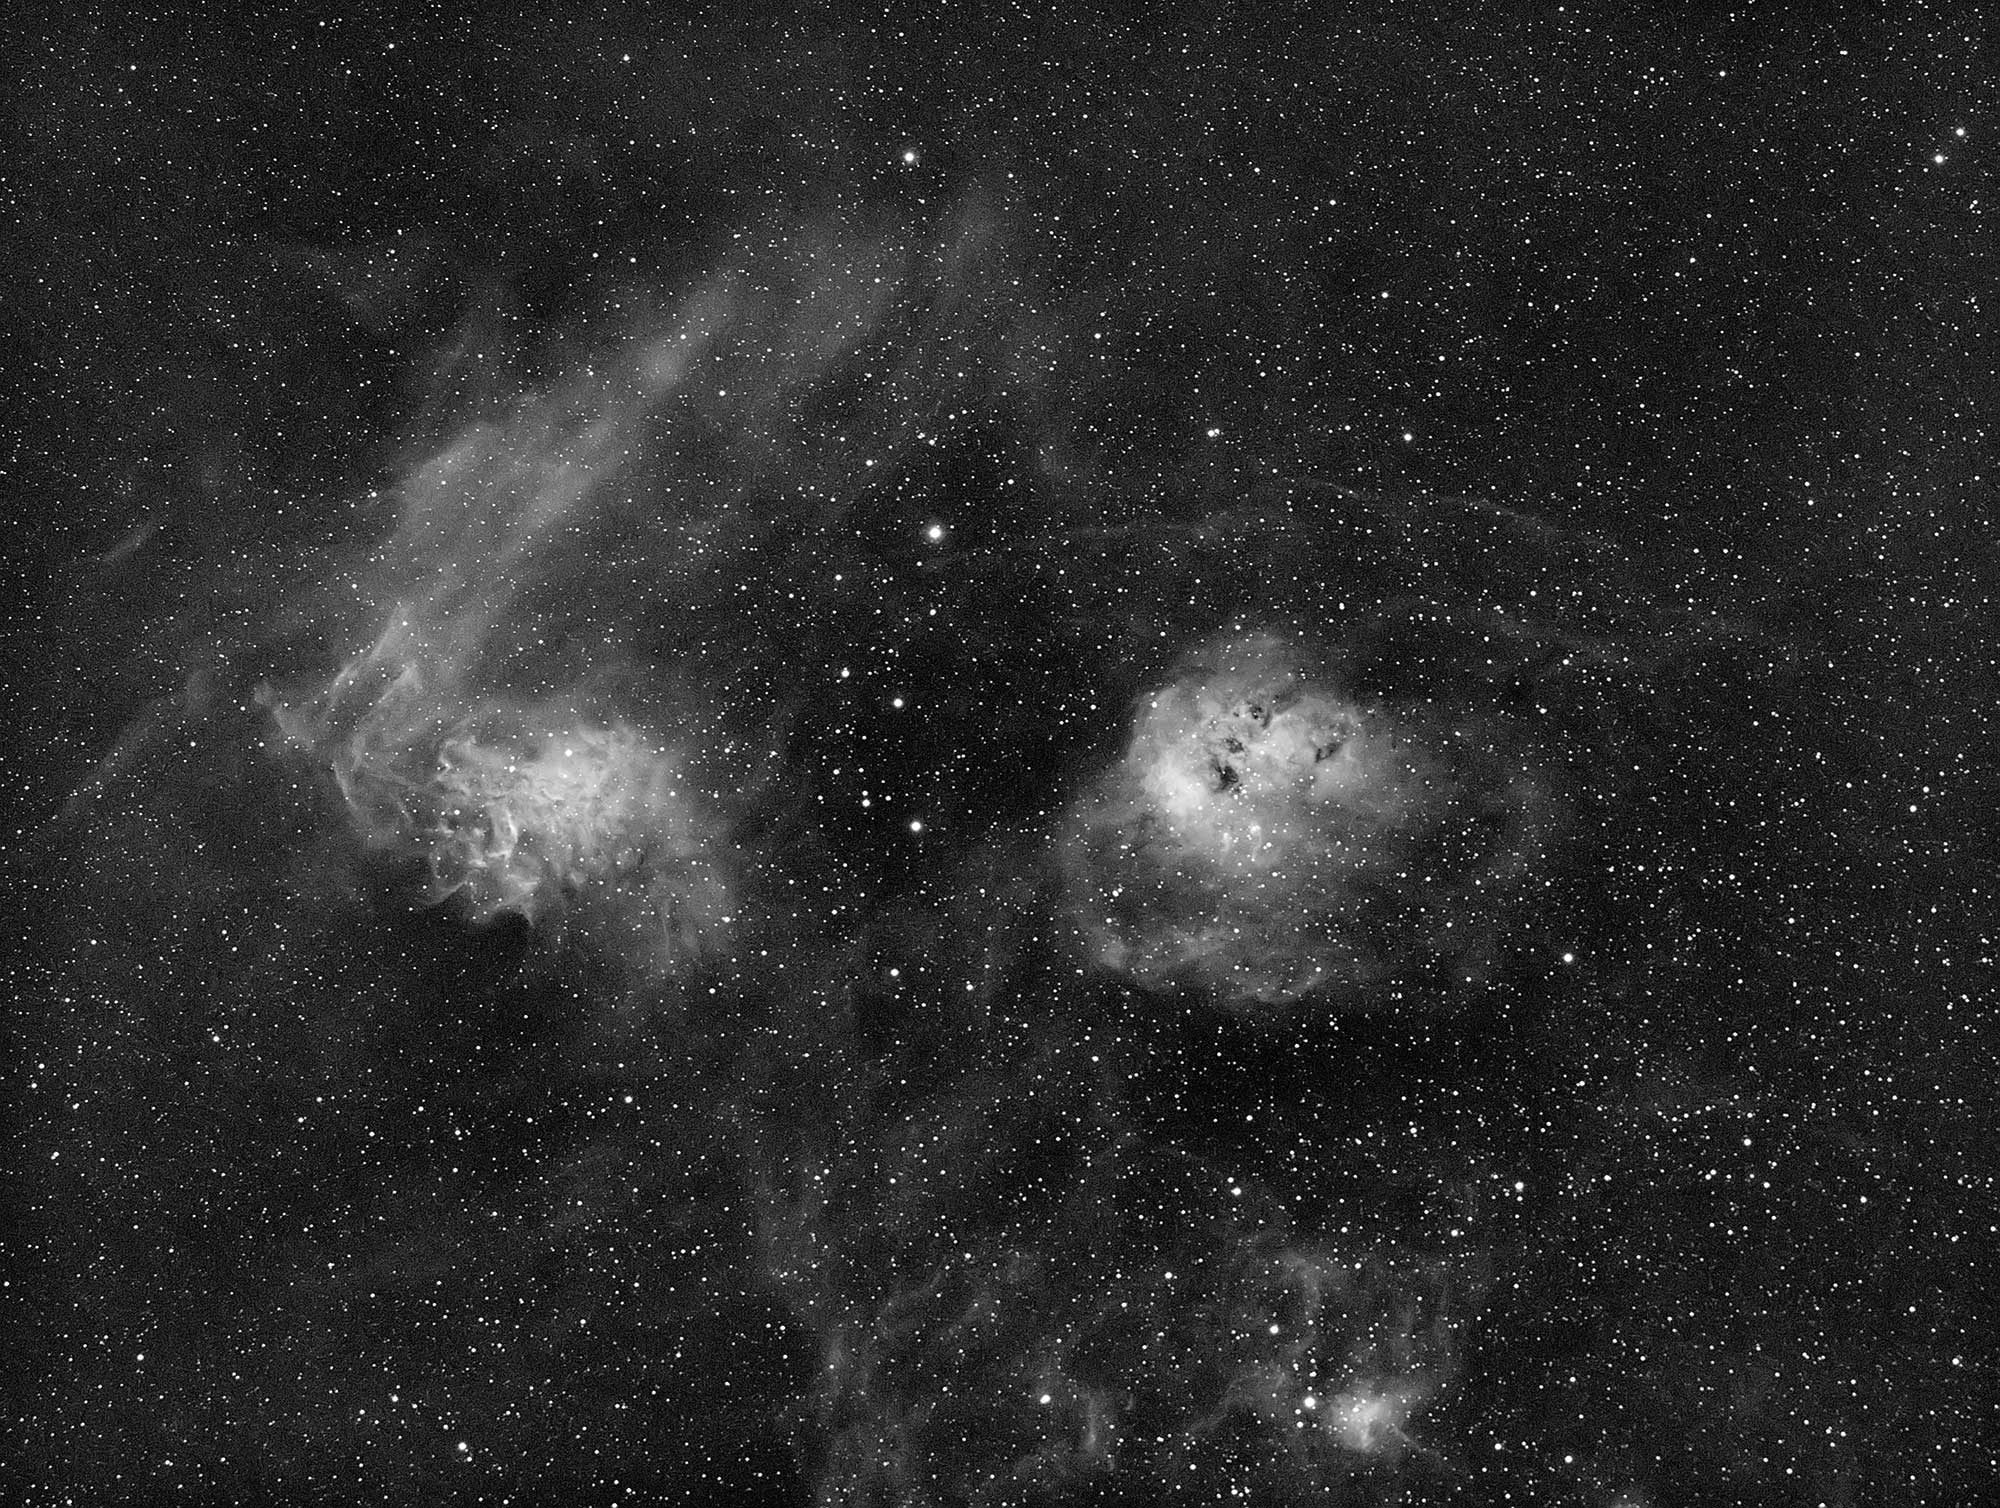 The Flaming Star nebula (IC405) to the left and NGC 1893 to the right.